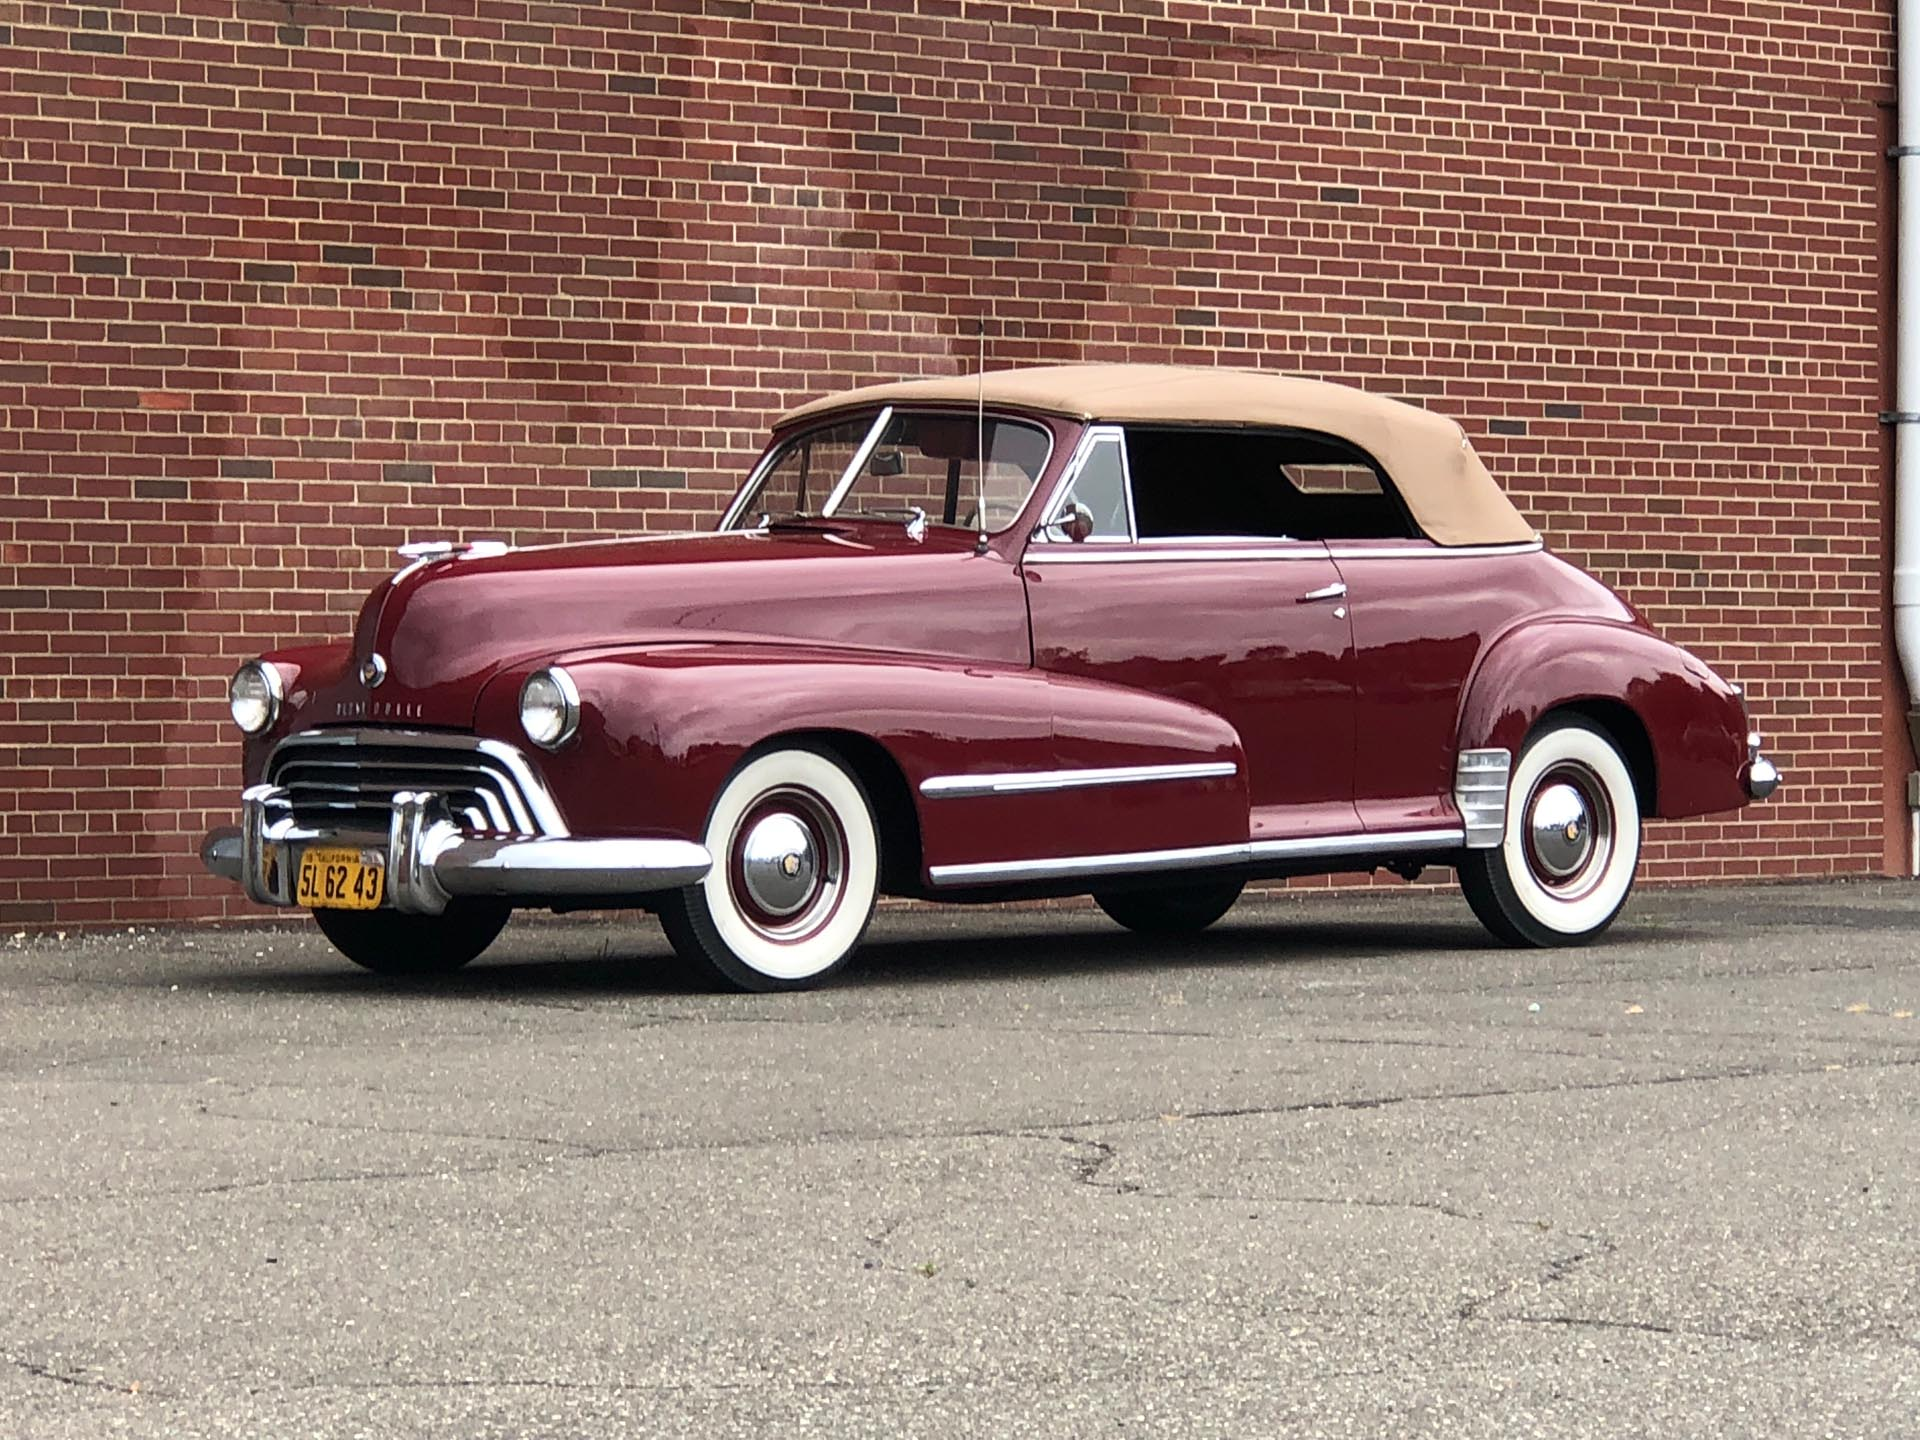 1948 Oldsmobile Series 68 Convertible Coupe